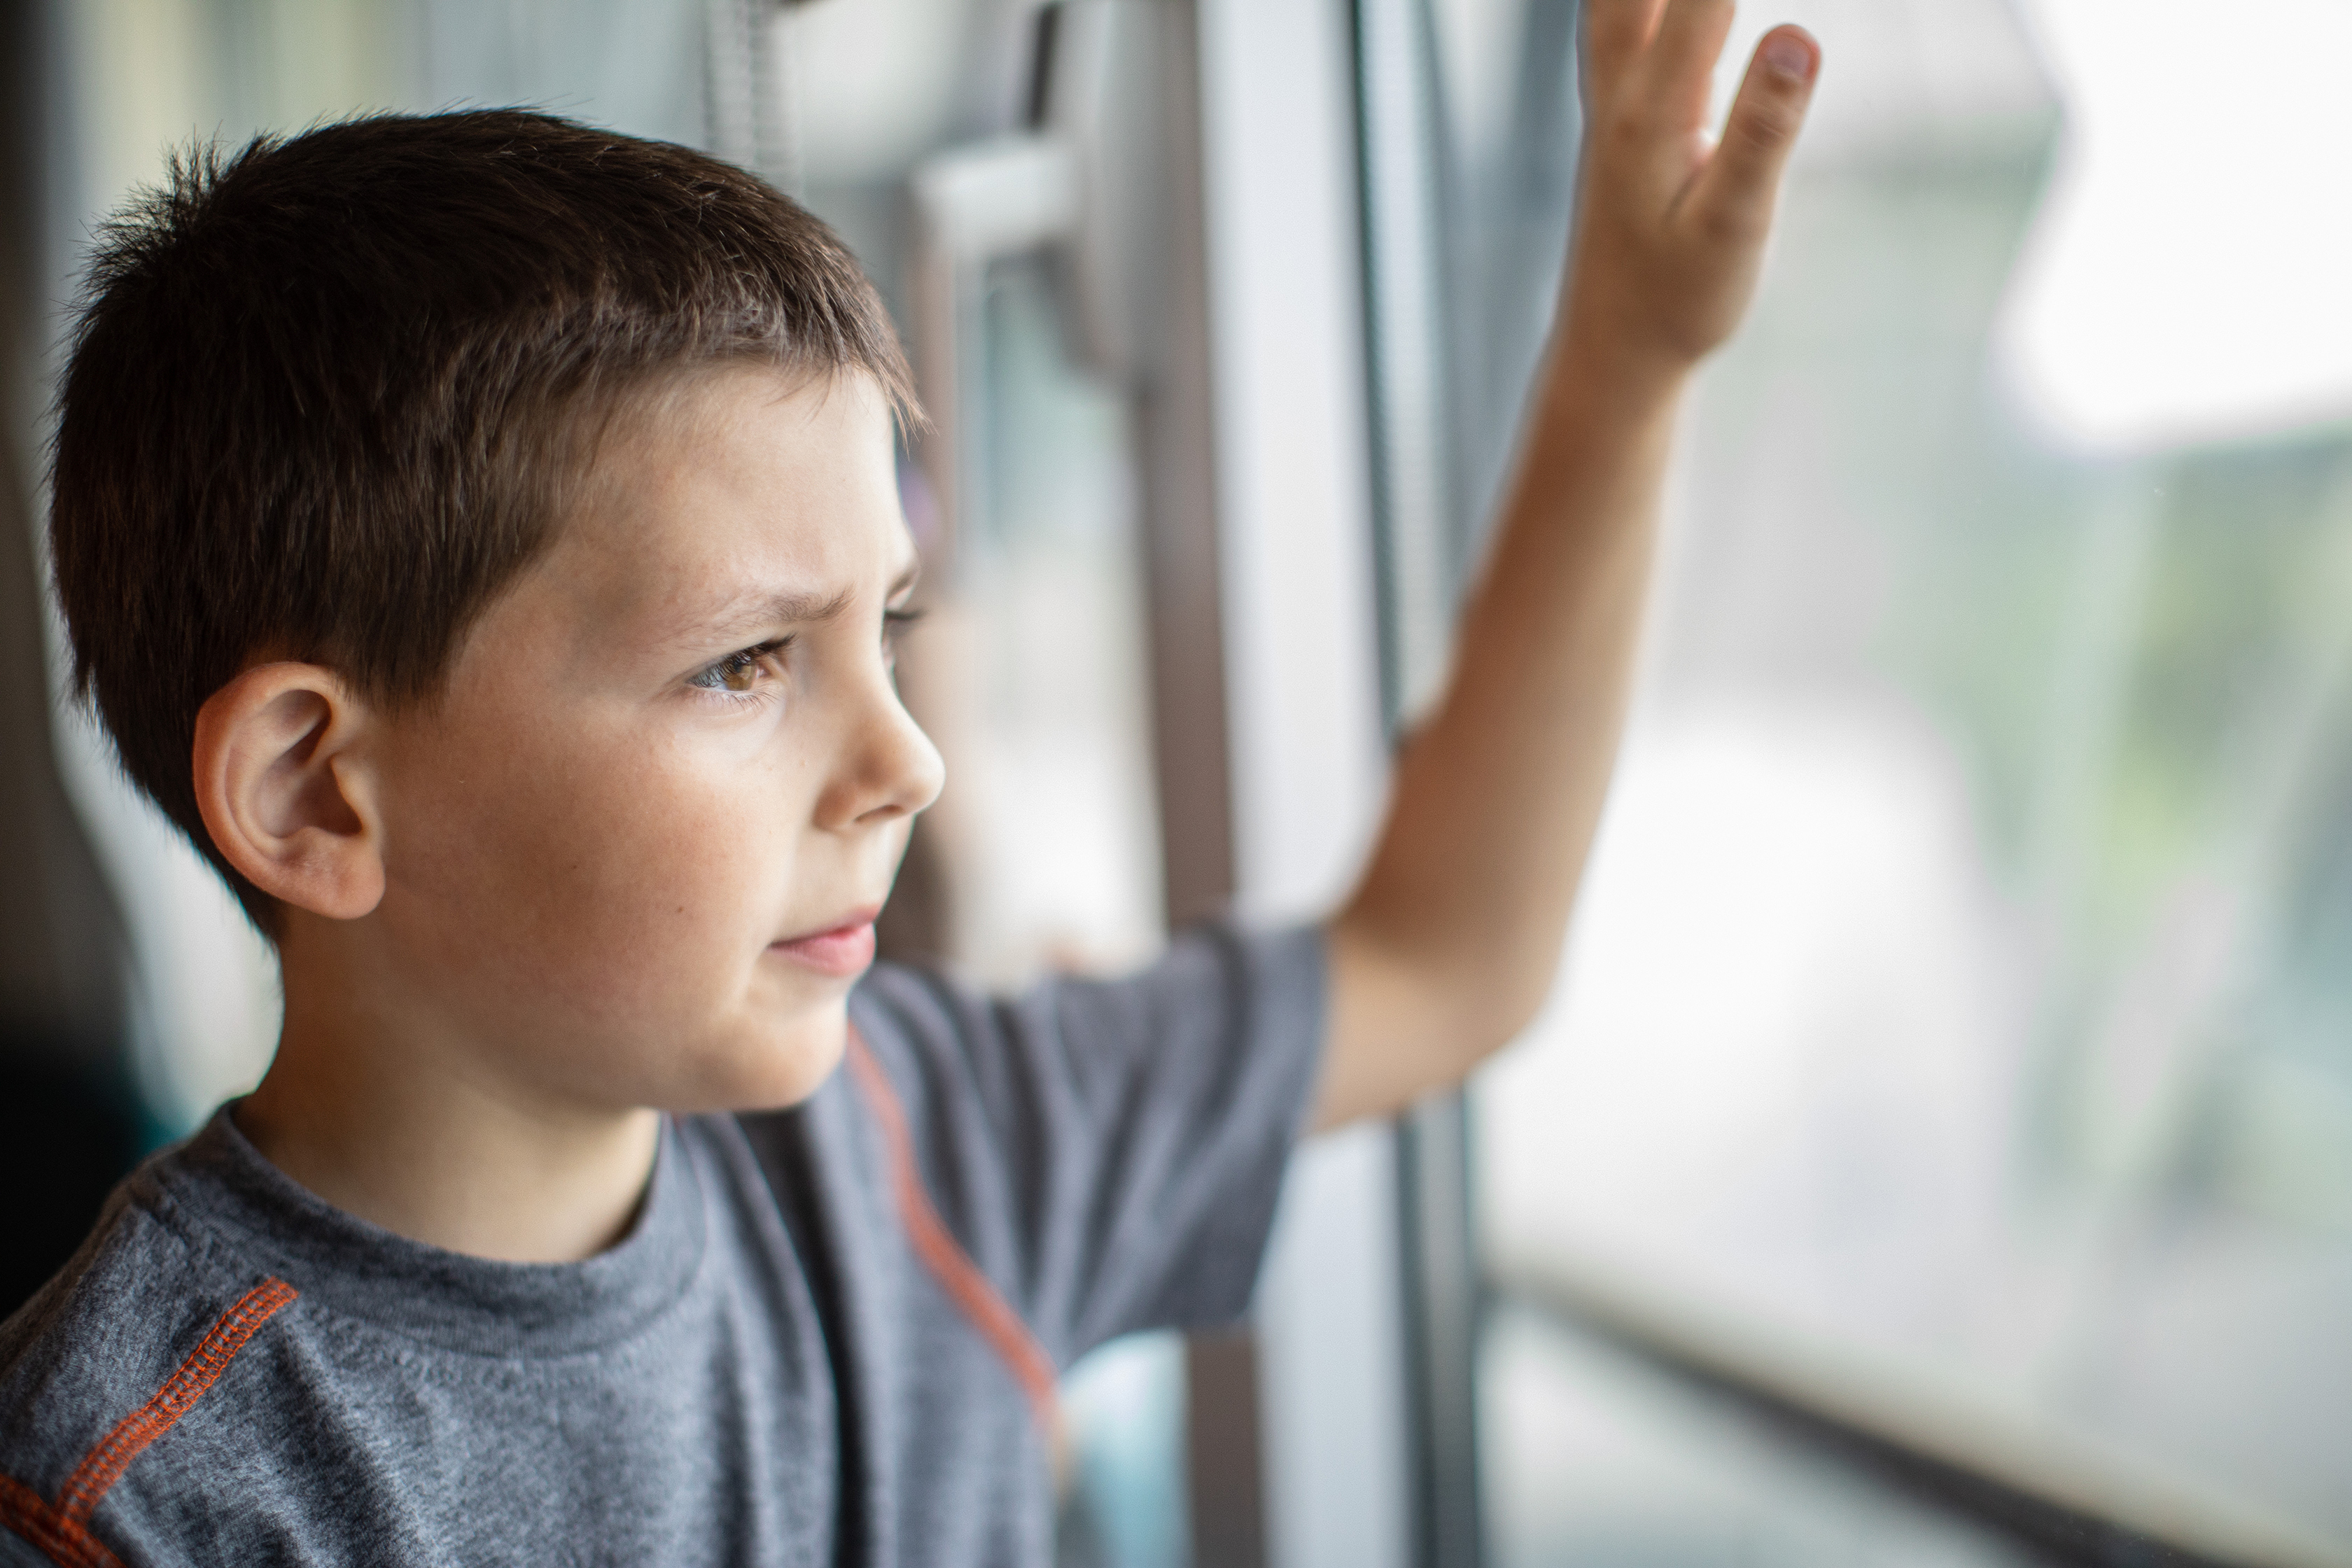 Young Boy Patient Looking Out Window